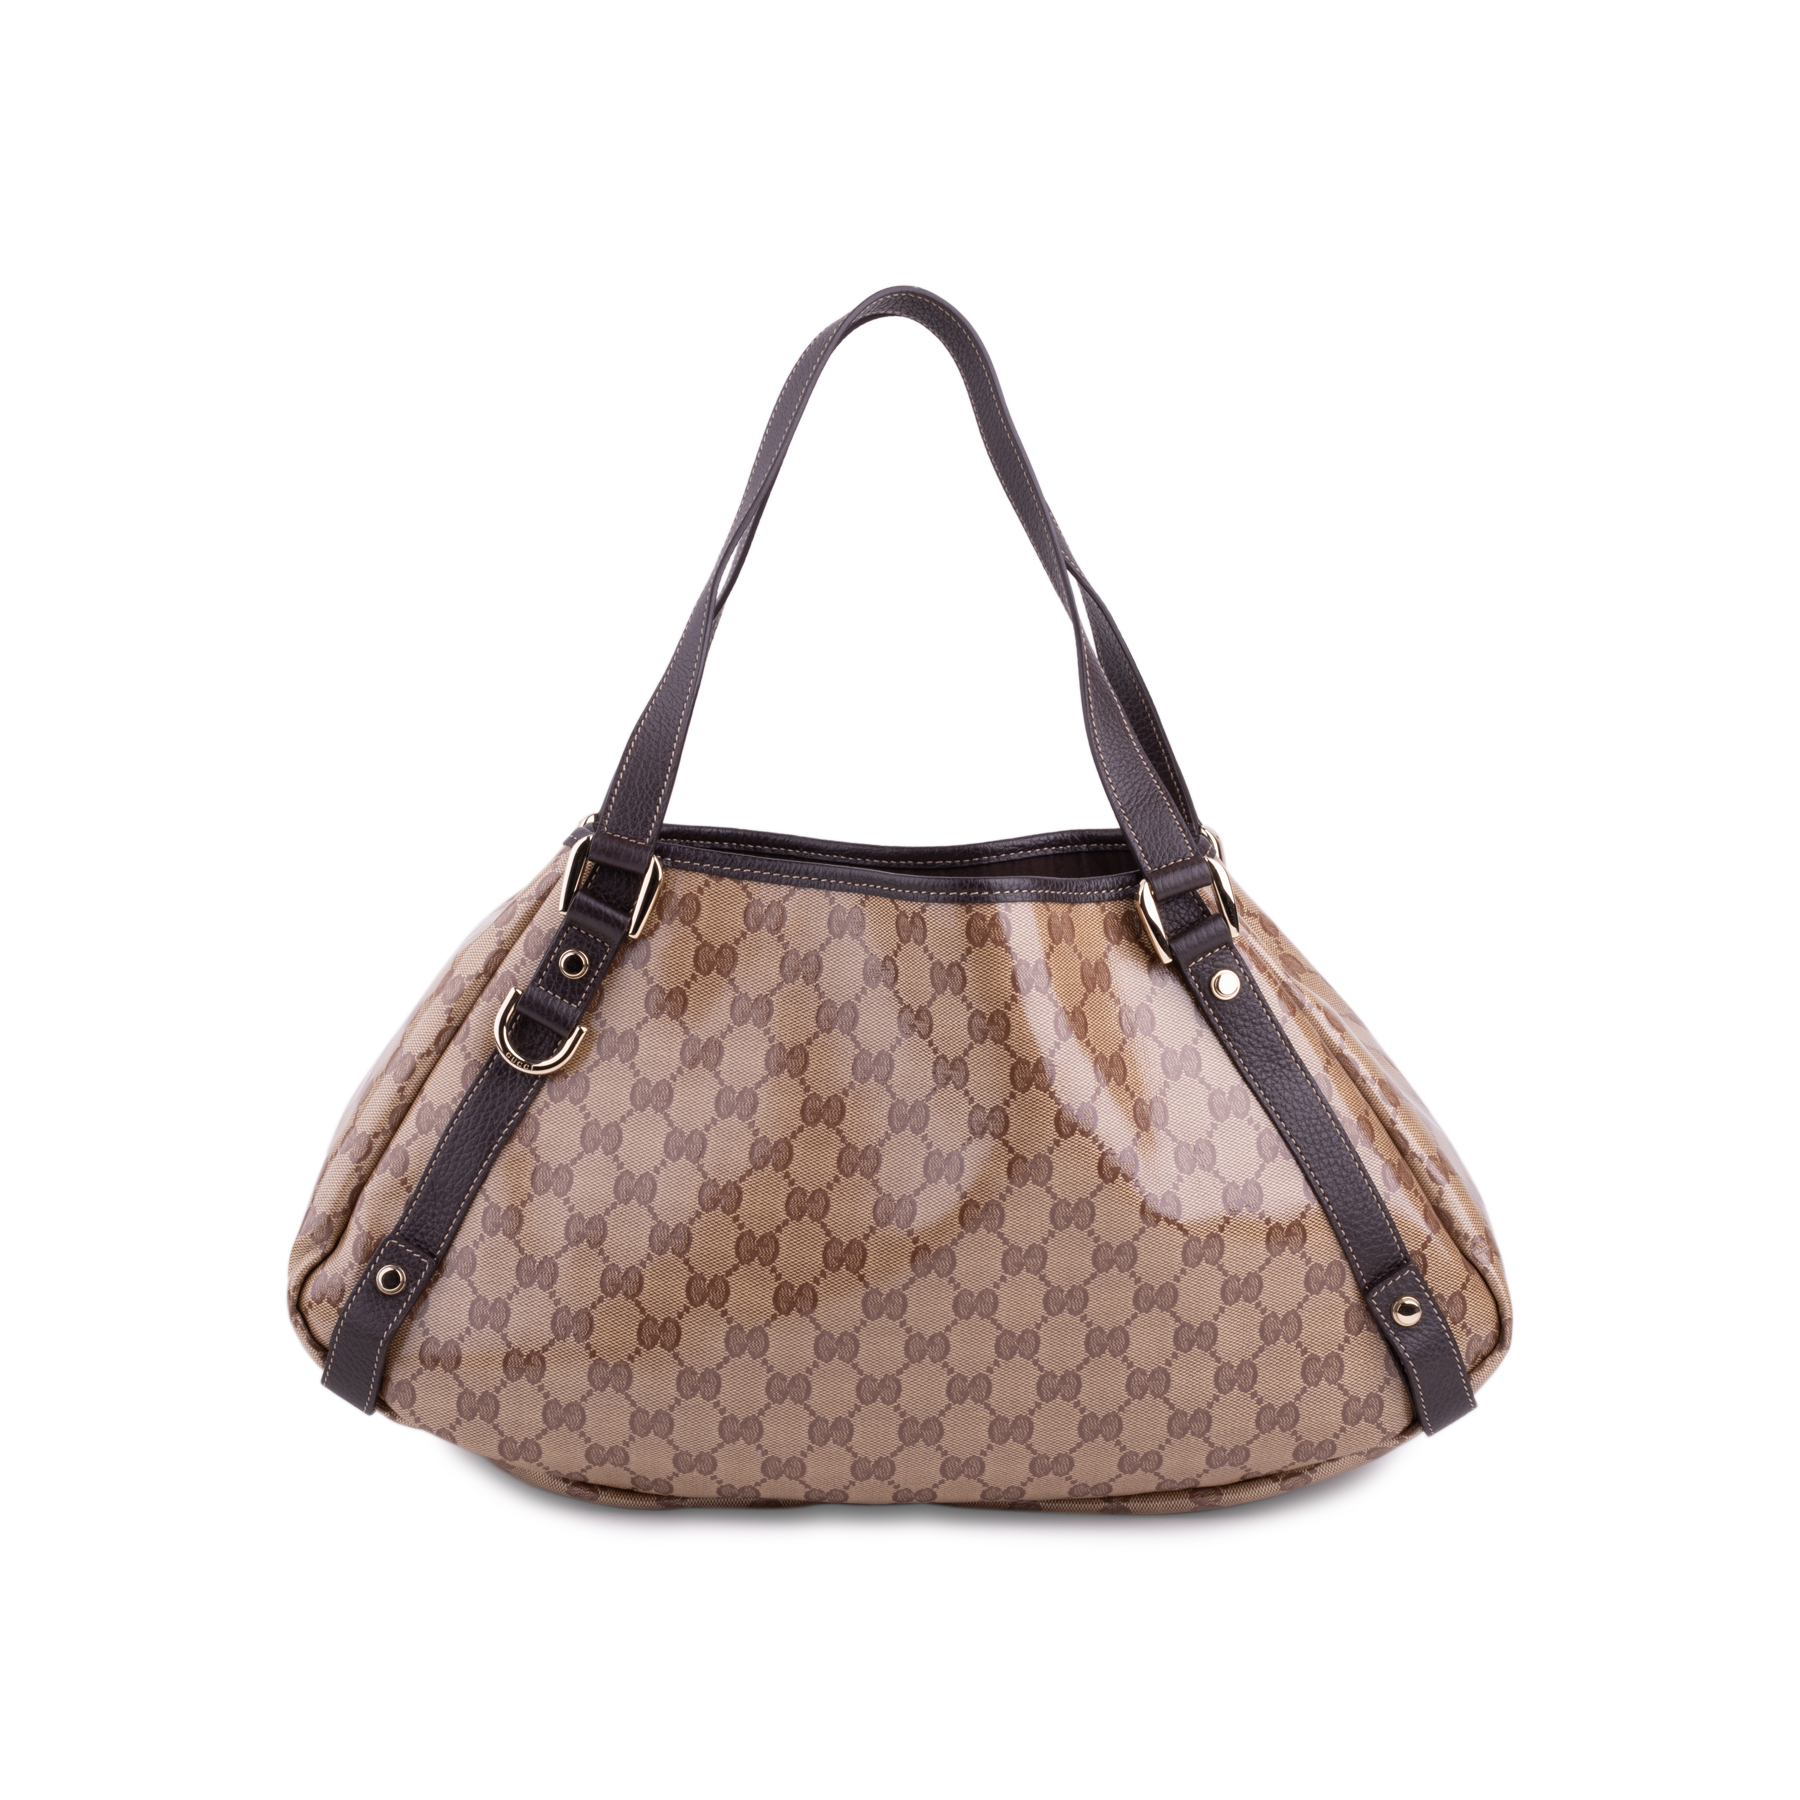 8a470980276410 Authentic Second Hand Gucci GG Monogram Tote (PSS-626-00024) | THE FIFTH  COLLECTION